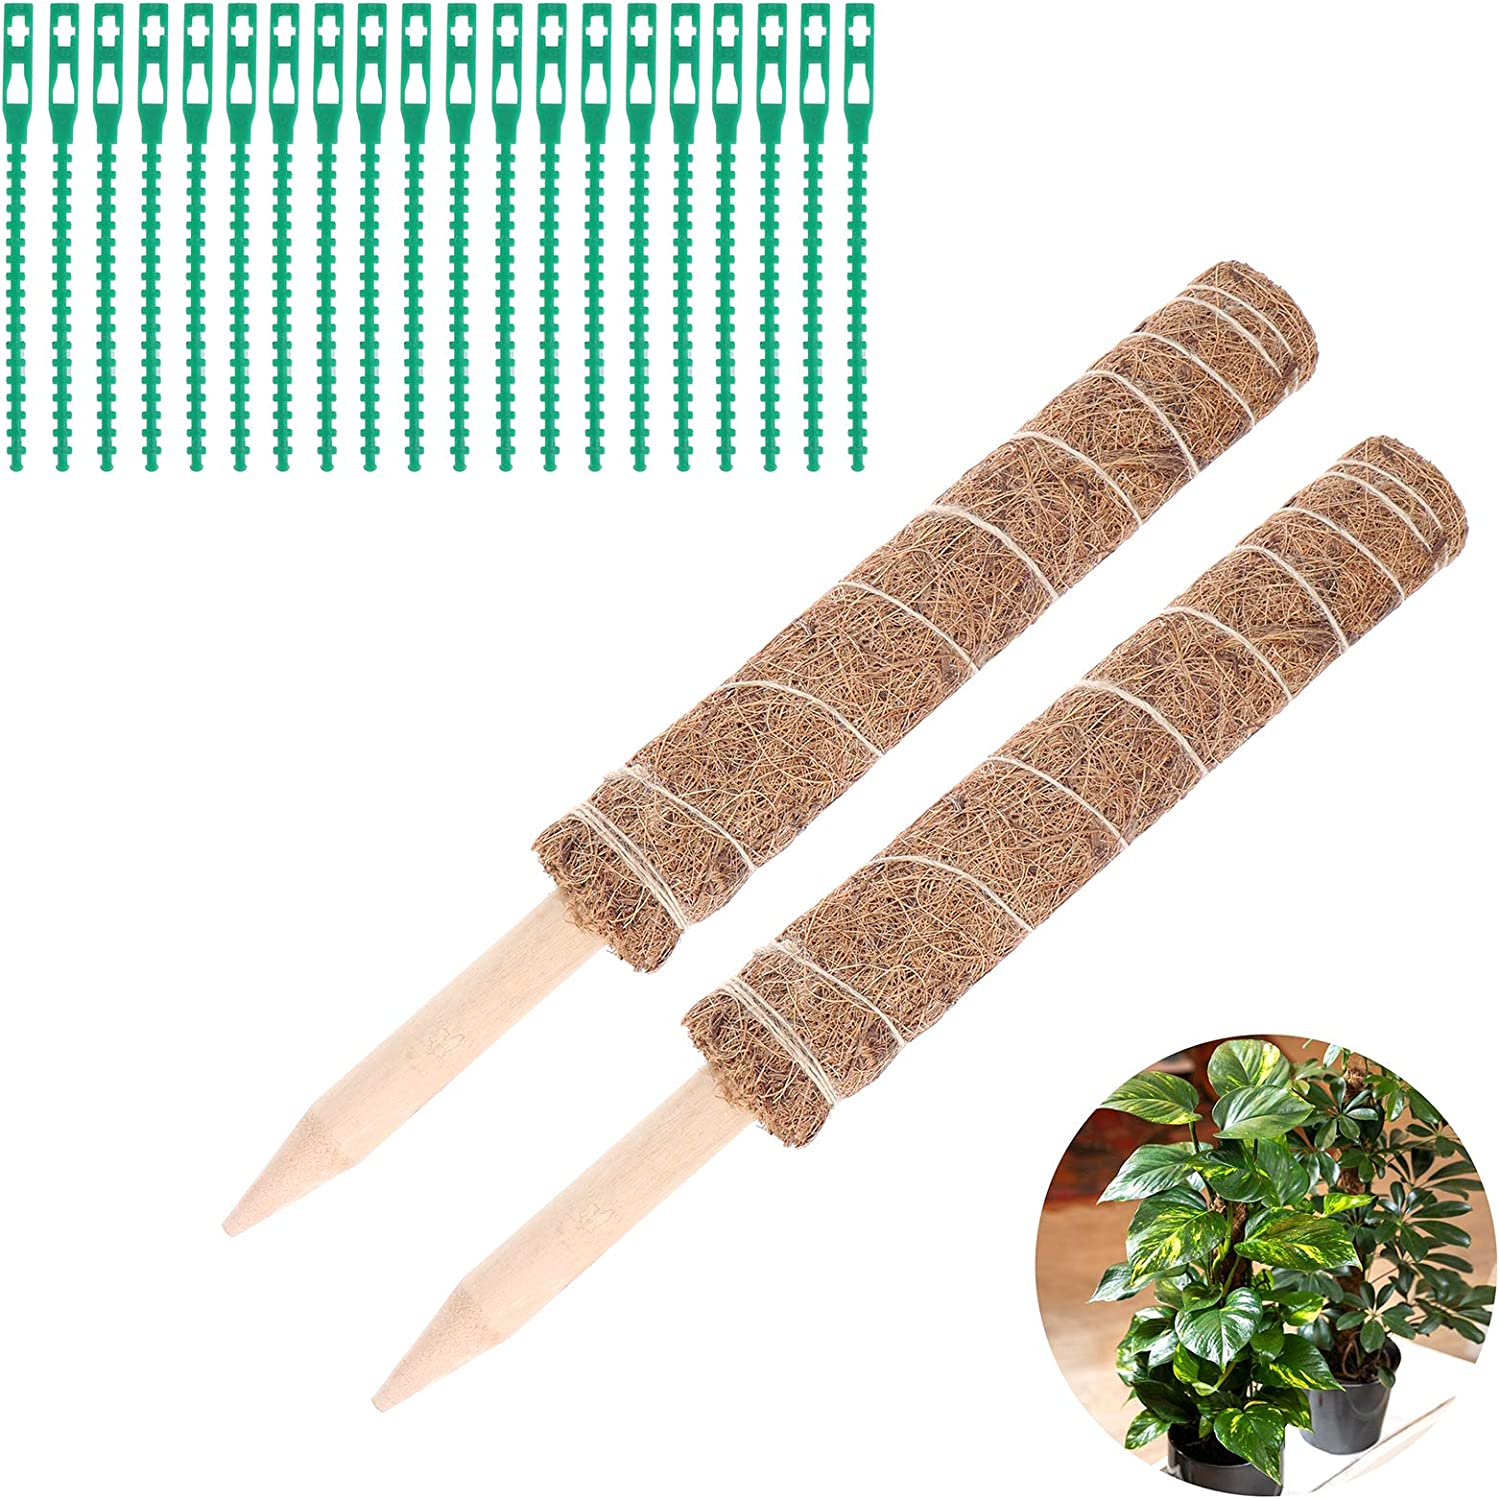 Olgaa 20 Pcs Multi-Purpose Garden Plant Twist Ties Flexible Plastic Plant Wrap Ties with 2 Pack Coir Totem Pole Sticks for Plant Support Extension Climbing Indoor Outdoor Plants